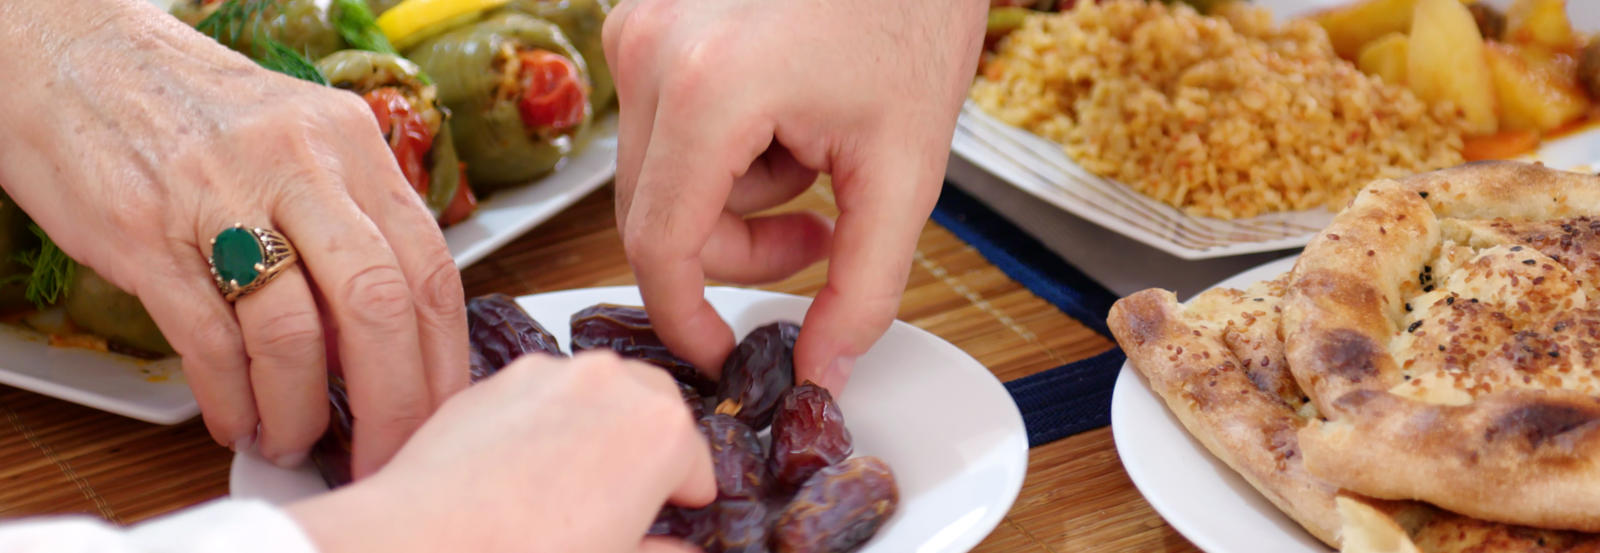 Three hands reach for a plate of dates.